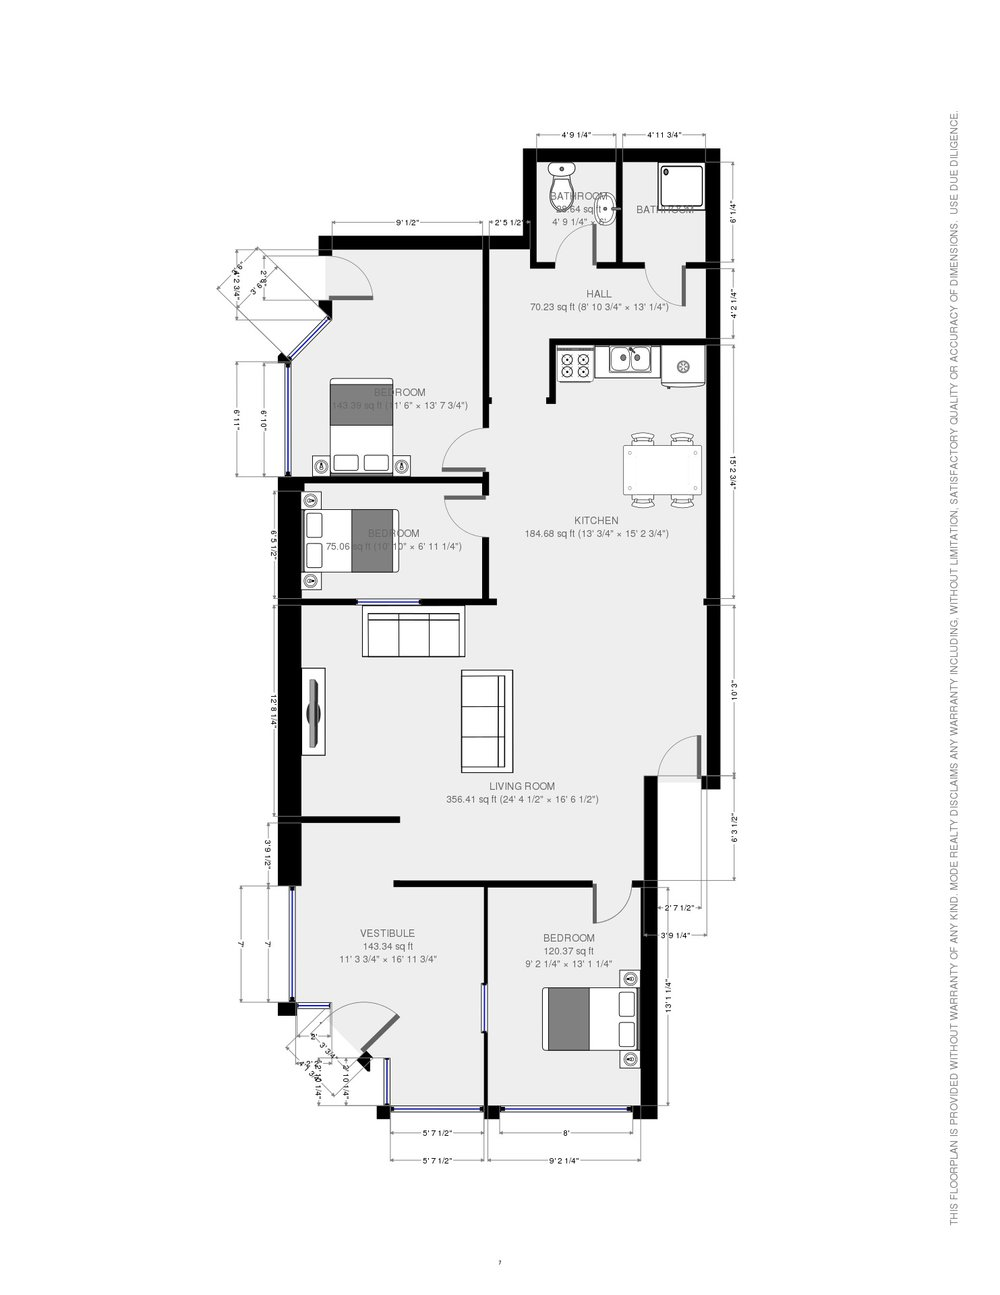 1F Storefront Plan Queen sized beds in bedrooms with night stands  (BIG BEDROOMS)